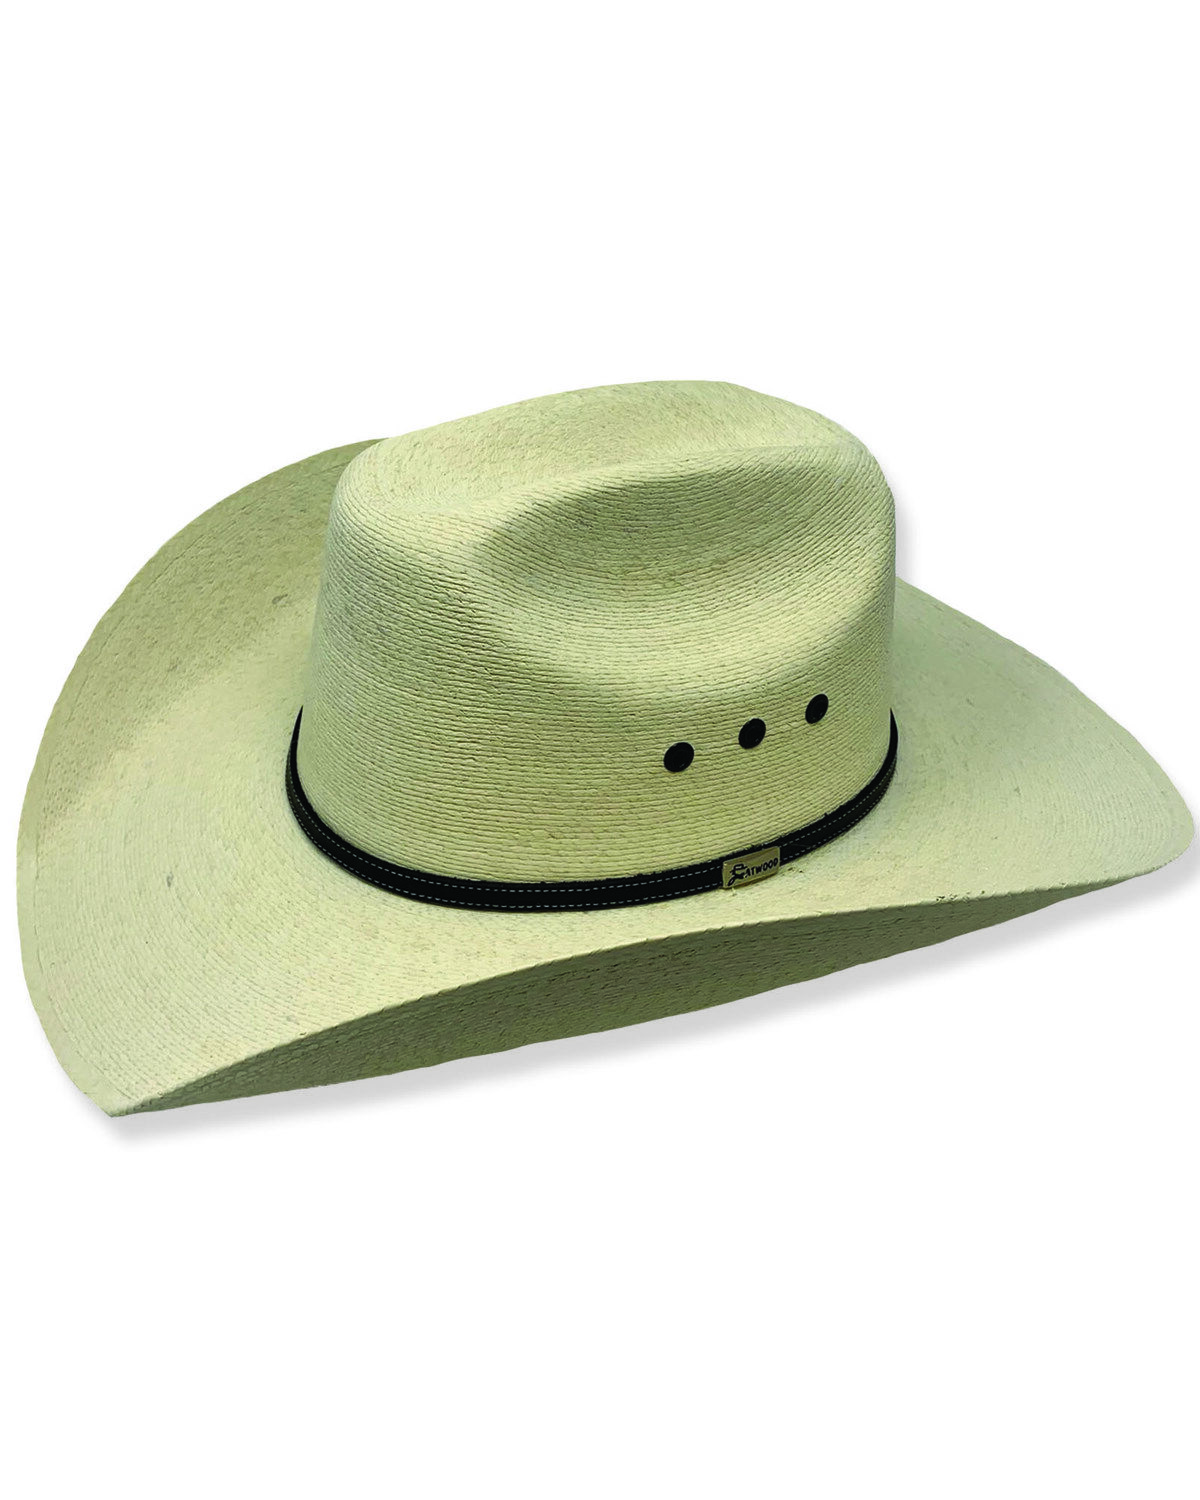 Atwood 15X Nevada Hat NEV-E-A